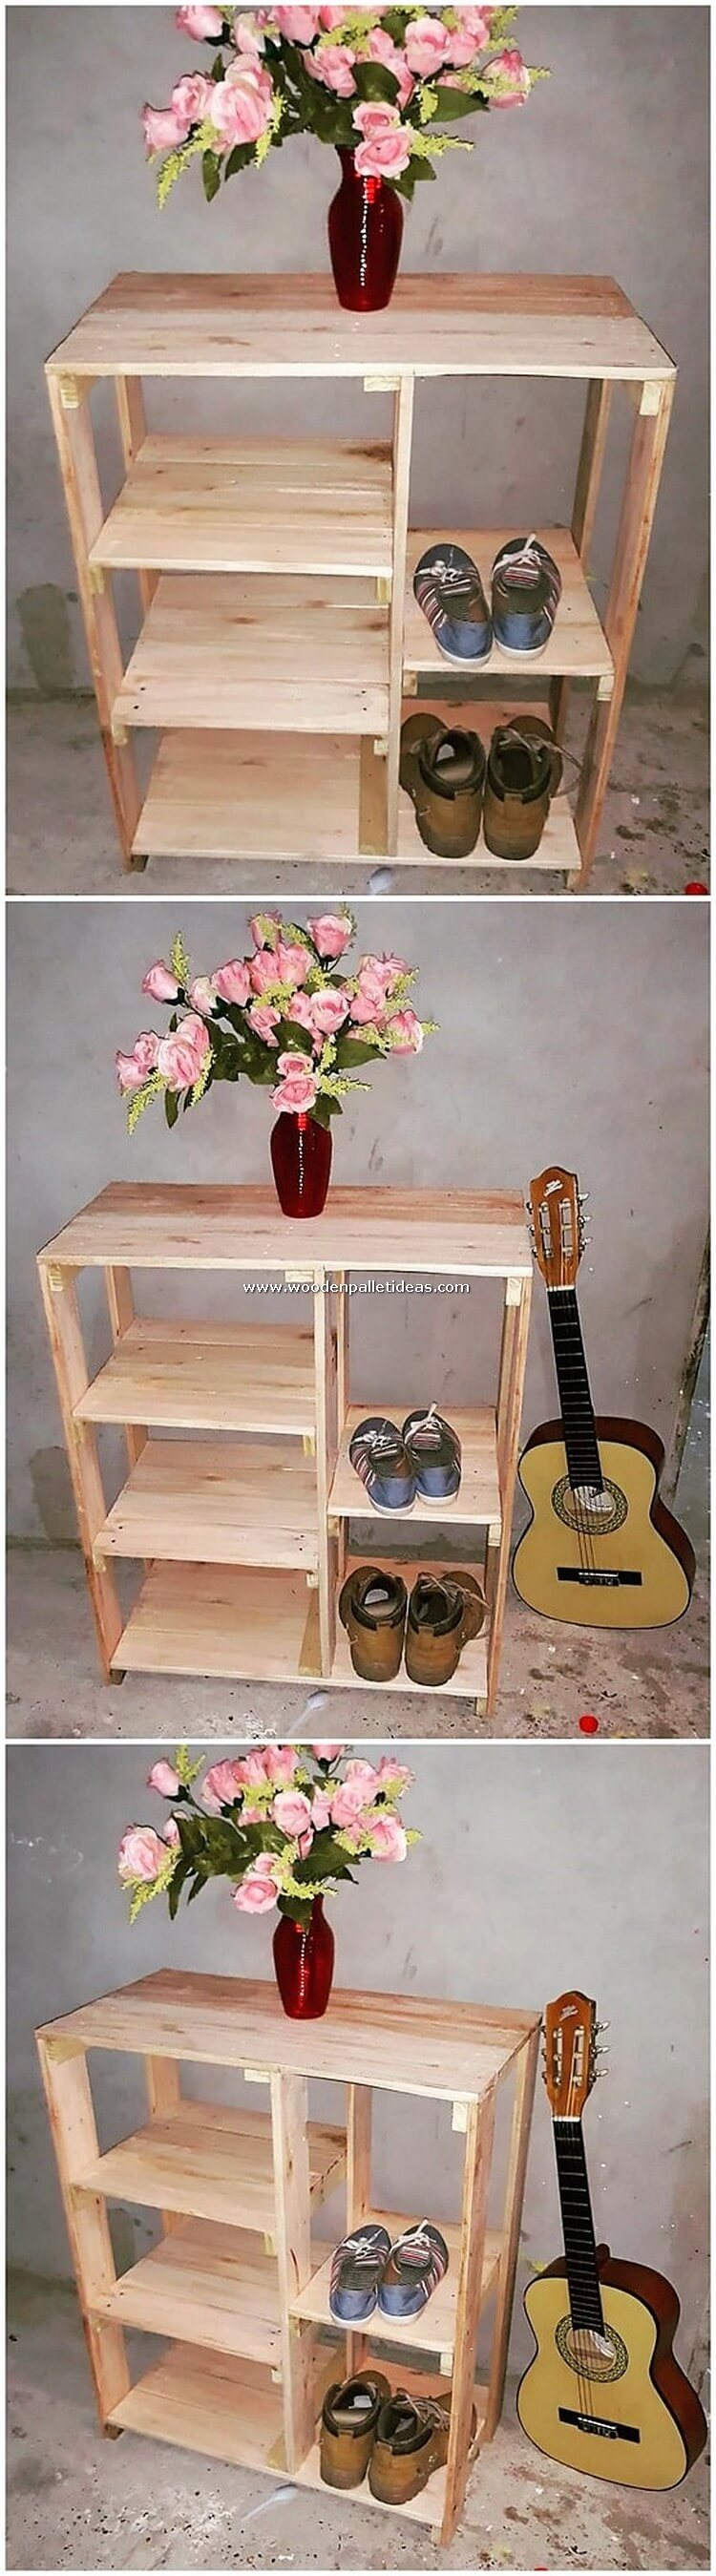 Pallet-Wood-Table-with-Shoe-Rack